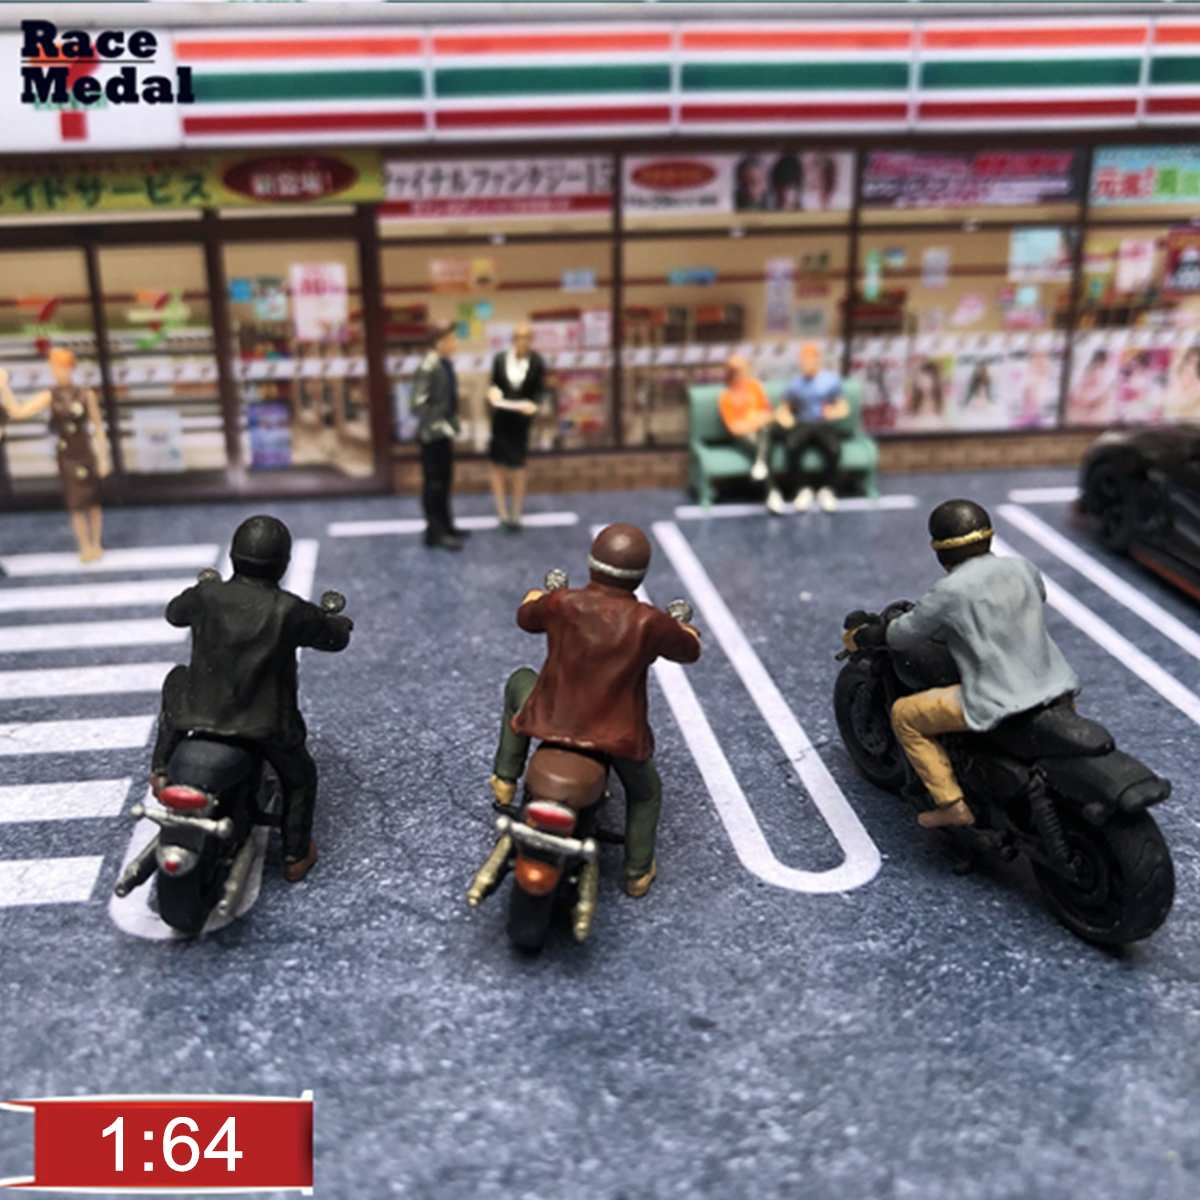 1:64 Scale Mini Colorful Diorama Motorcycle Model Character Model Doll Scene For Race Medal Matchbox